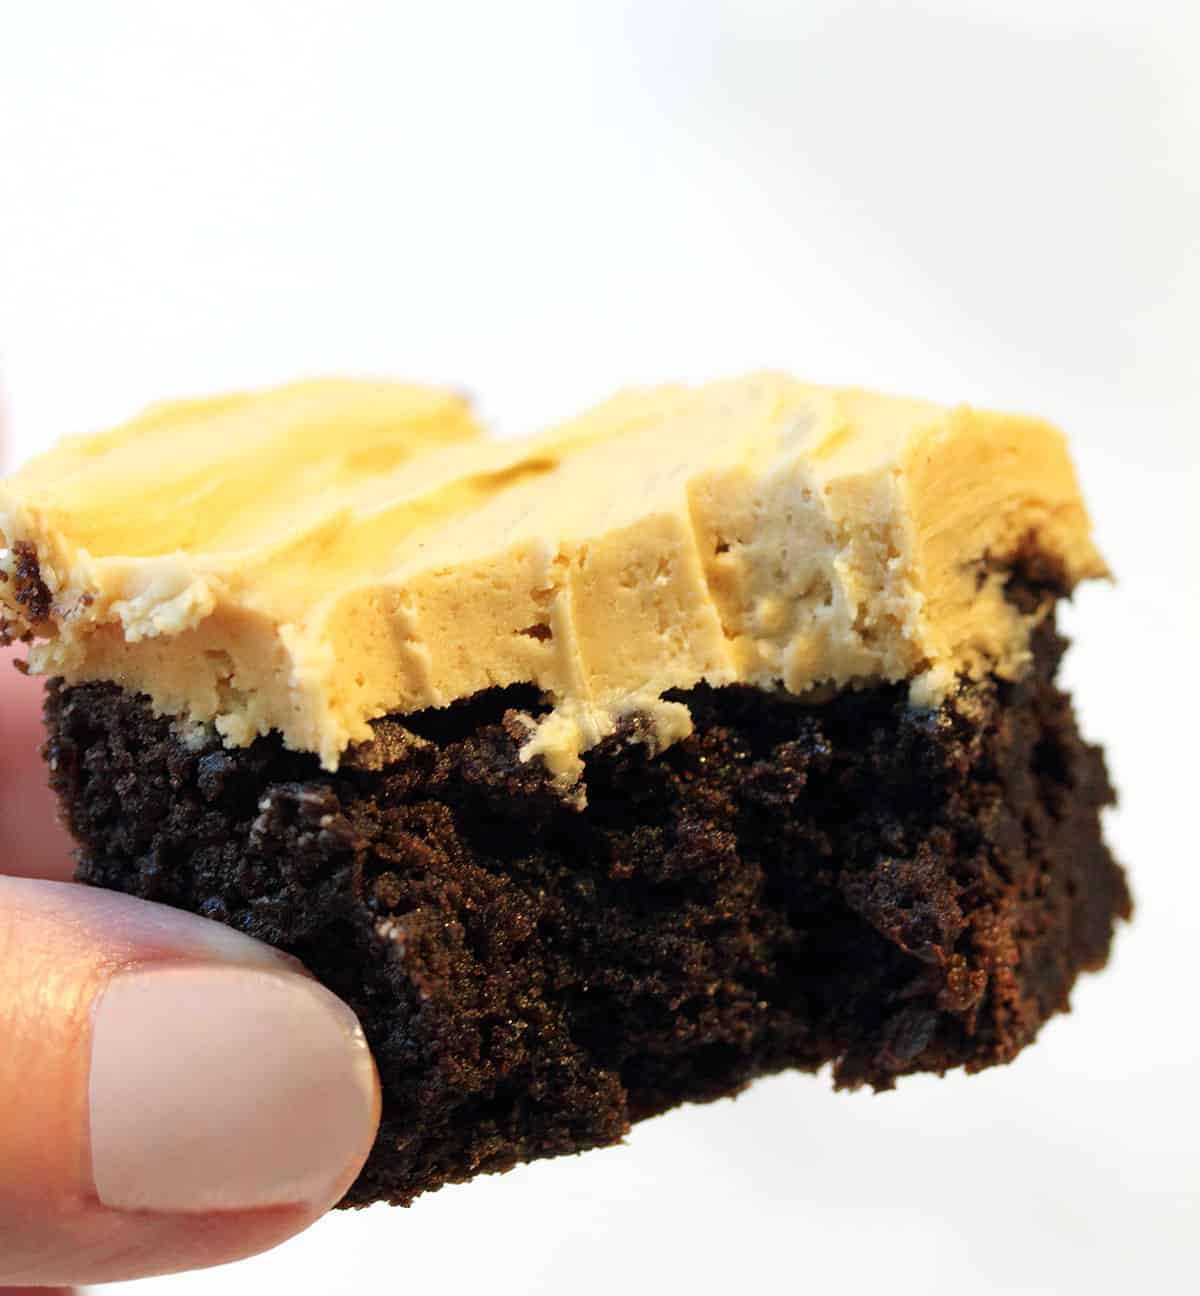 Bite of brownie with peanut butter frosting.